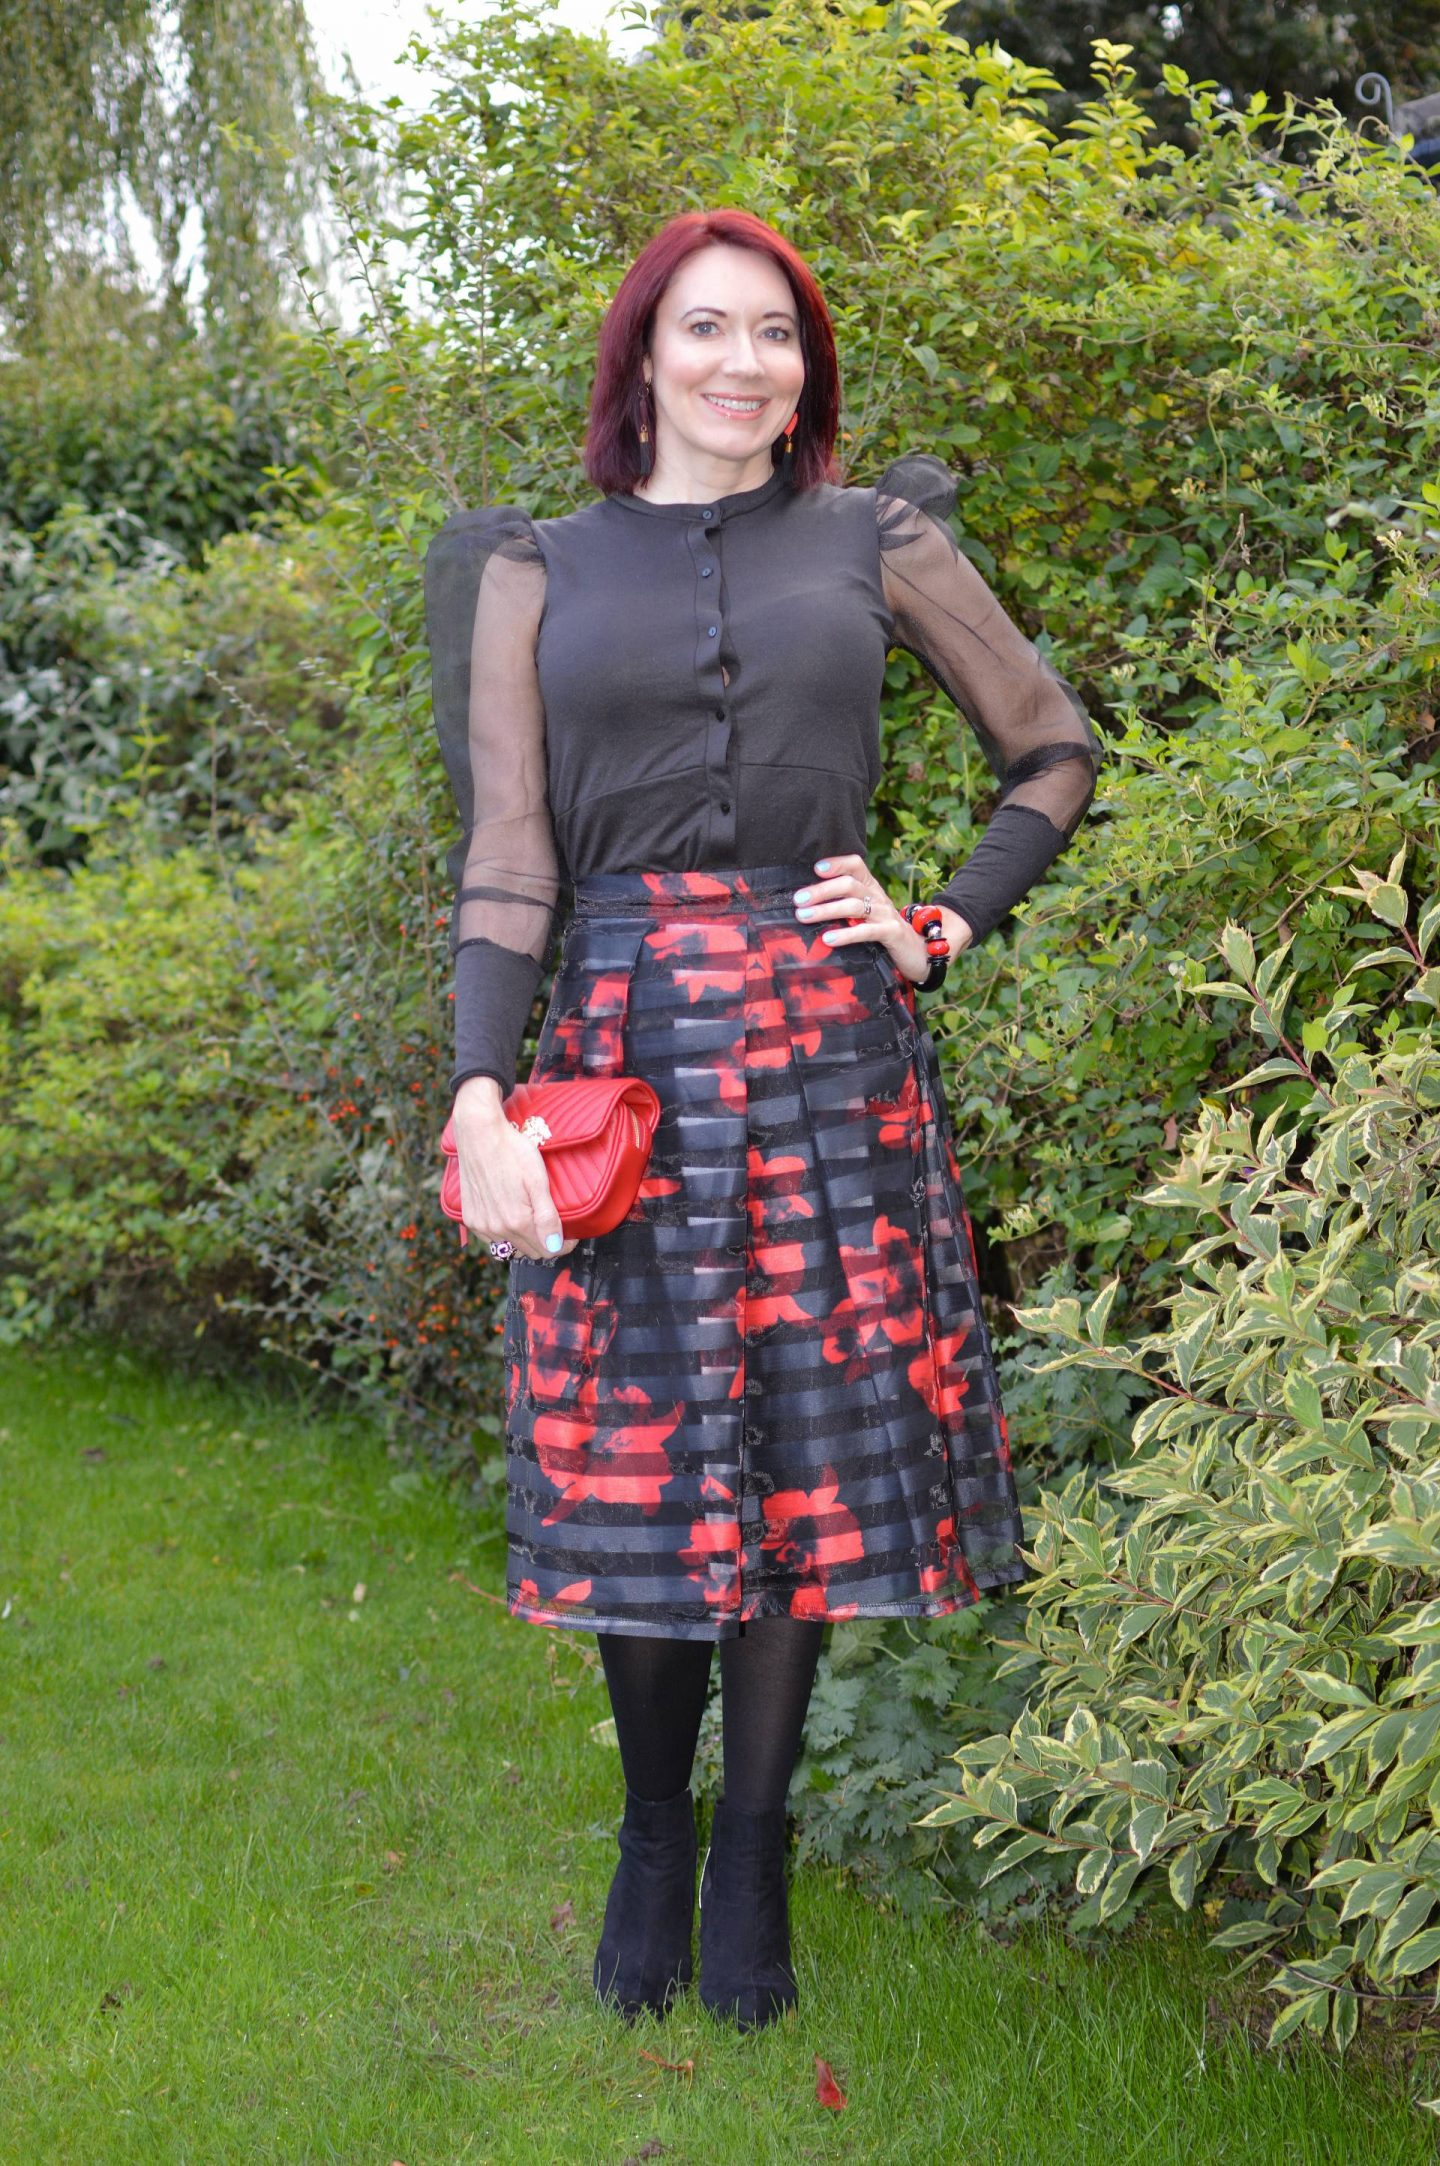 Sheer Puff Sleeve Top and Floral Print Skirt